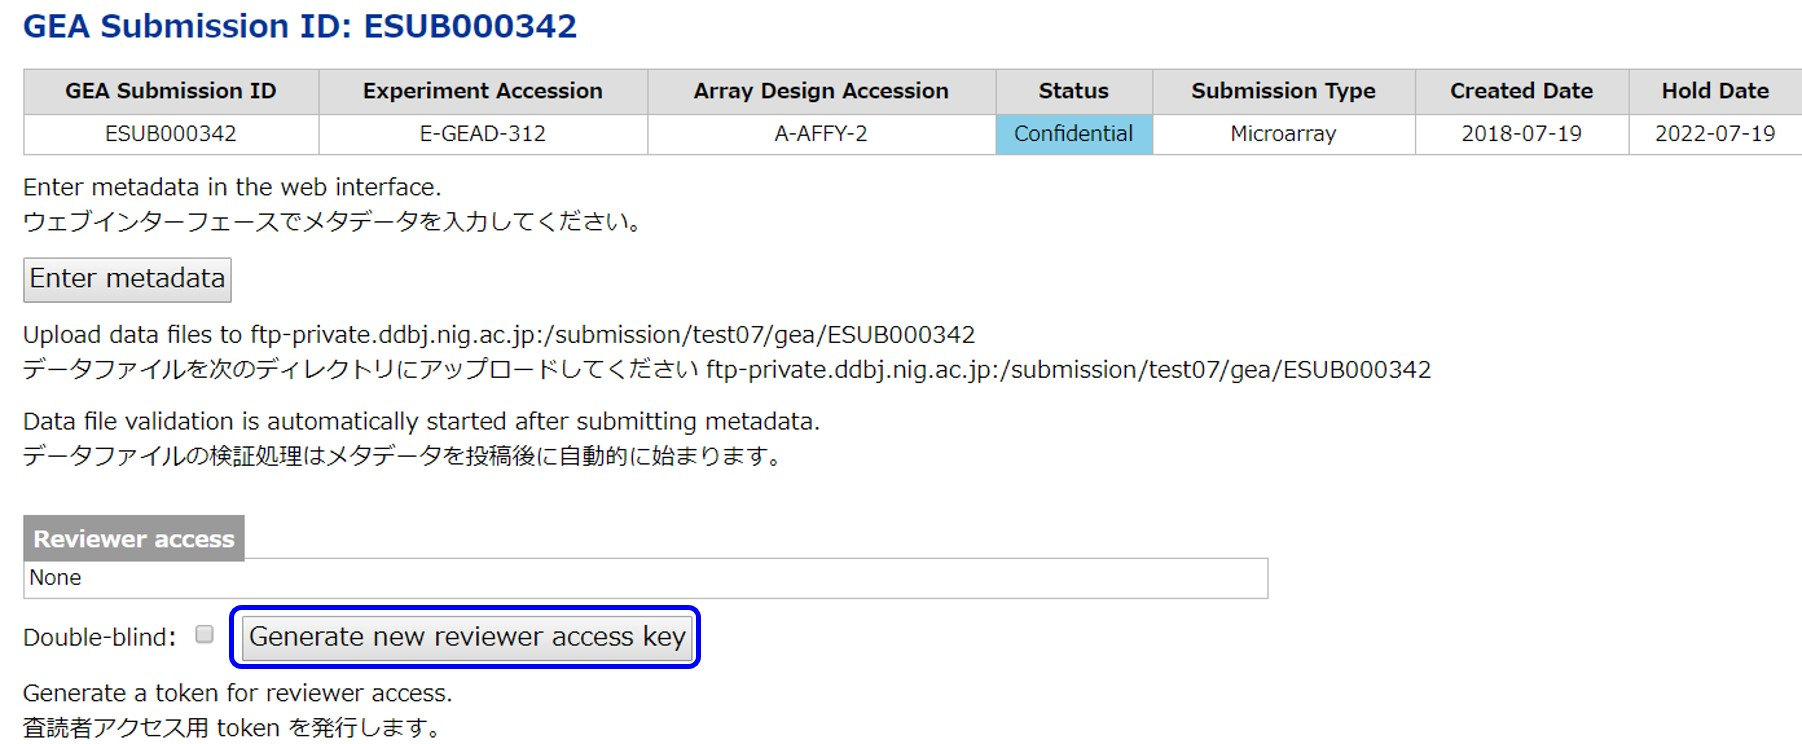 reviewer access key を生成